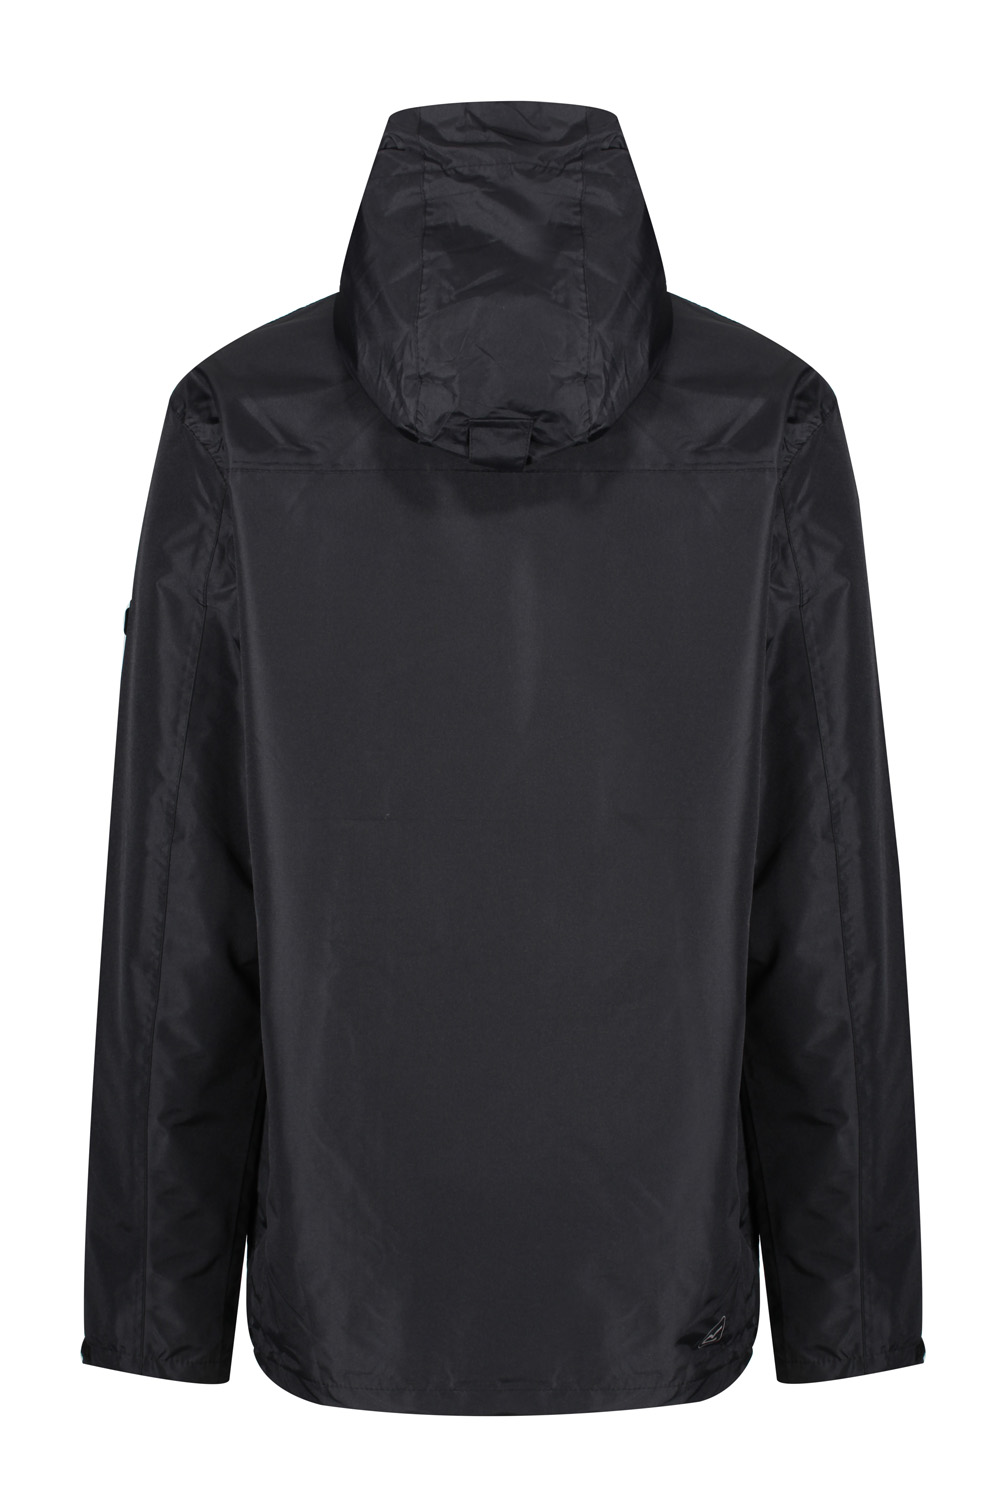 Regatta-Mens-Calderdale-II-Jacket-Waterproof-Breathable-Isotex-5000-Hooded-Coat thumbnail 6